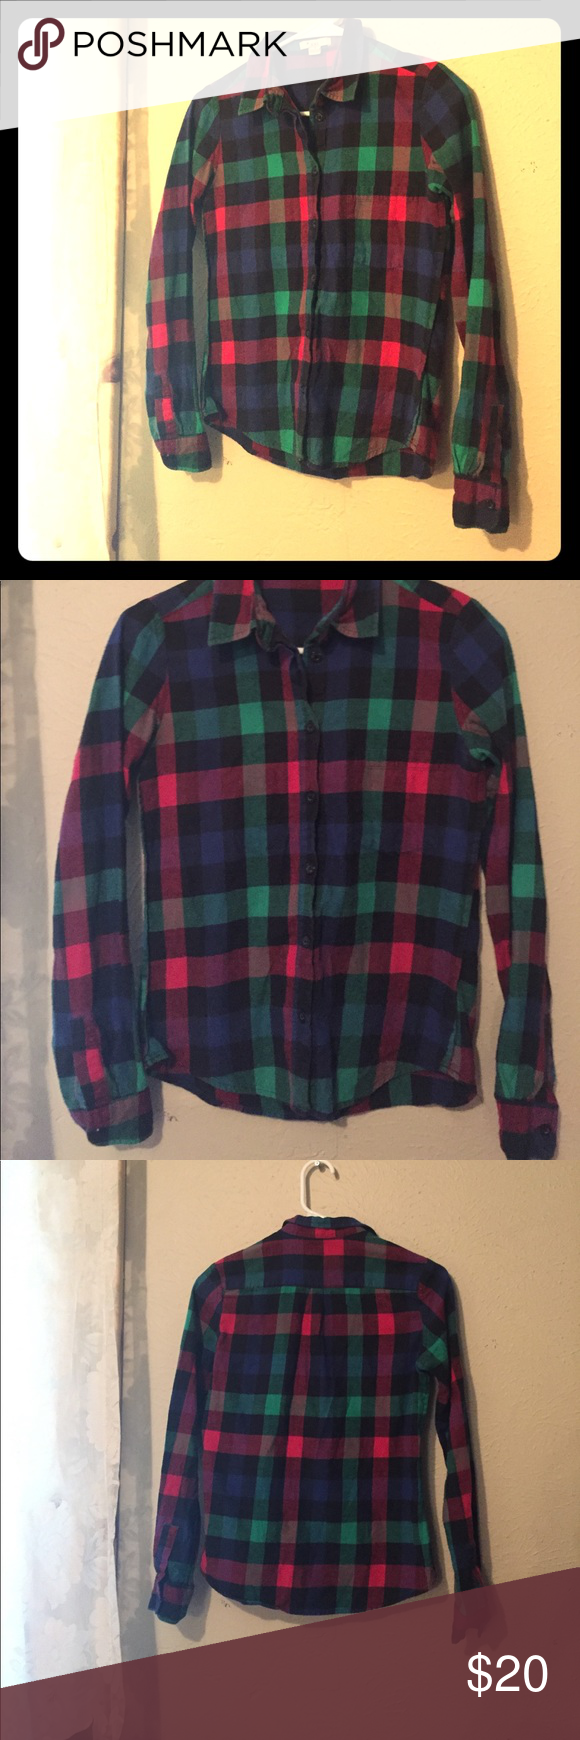 Button up flannel shirts  Plaid long sleeve flannel button up  Pinterest  Flannels Plaid